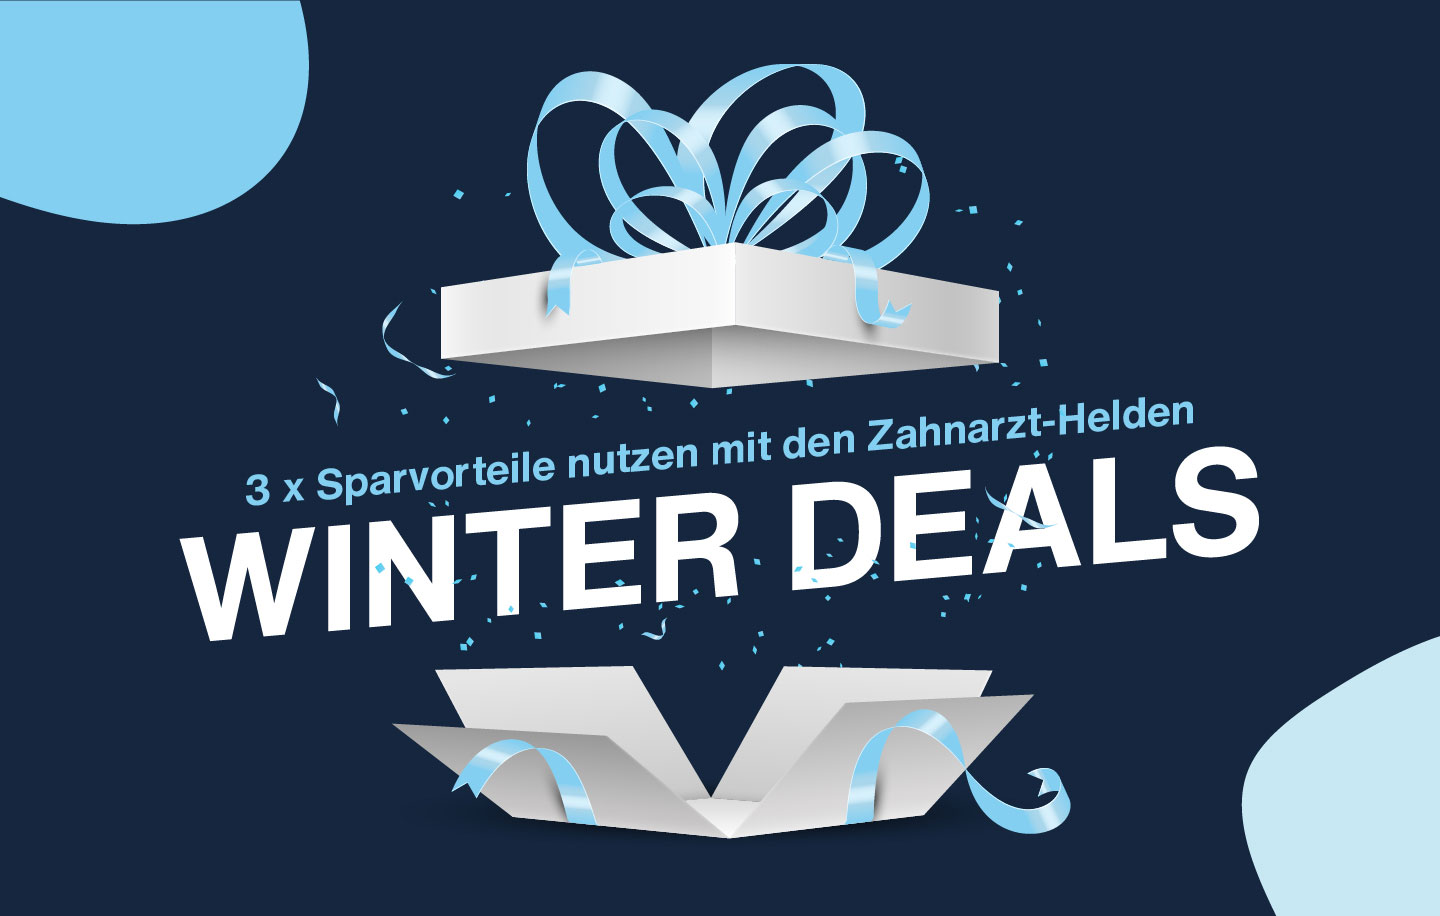 Winter-Deals 2020: 3x Sparvorteile nutzen